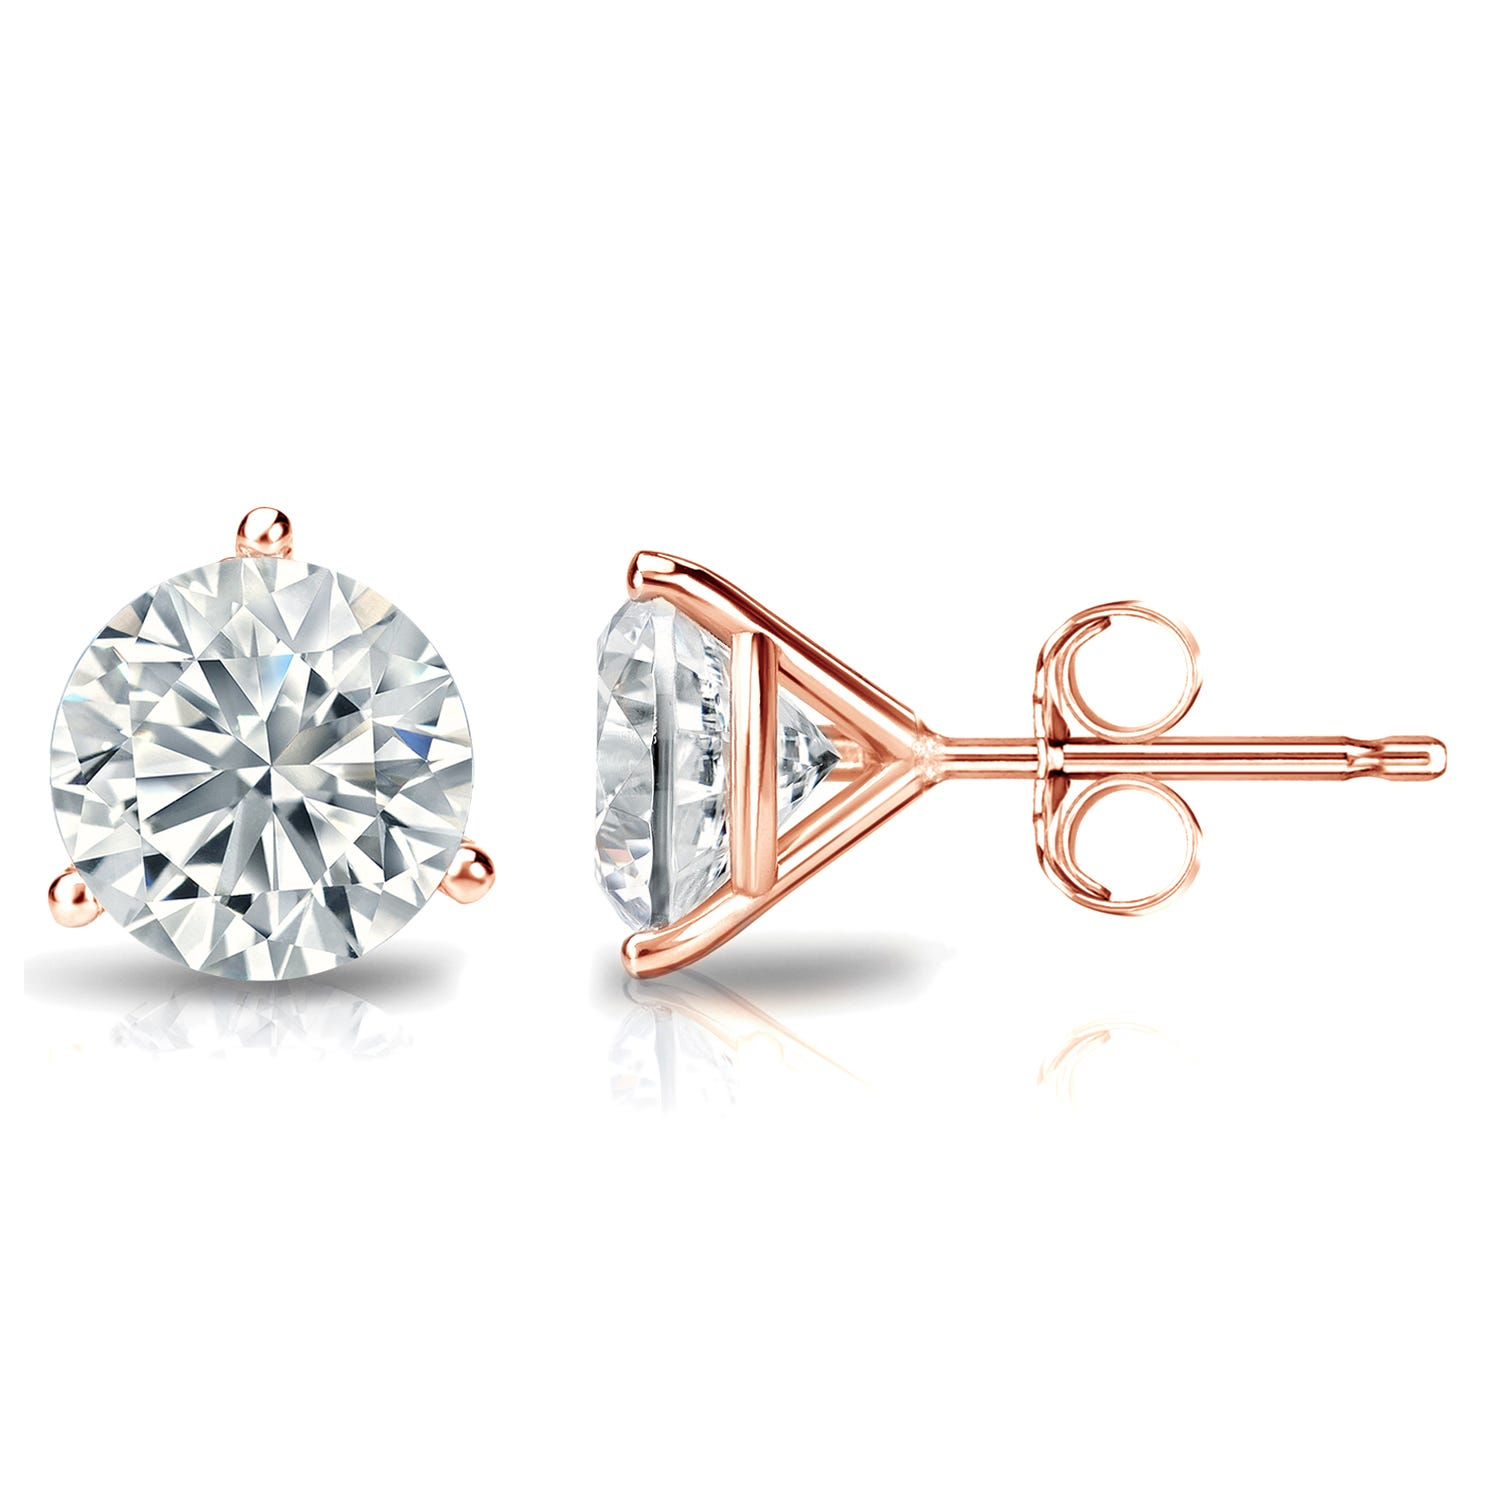 2 CTTW Round Diamond Solitaire Stud Earrings IJ SI2 in 14K Rose Gold IGI Certified 3-Prong Setting